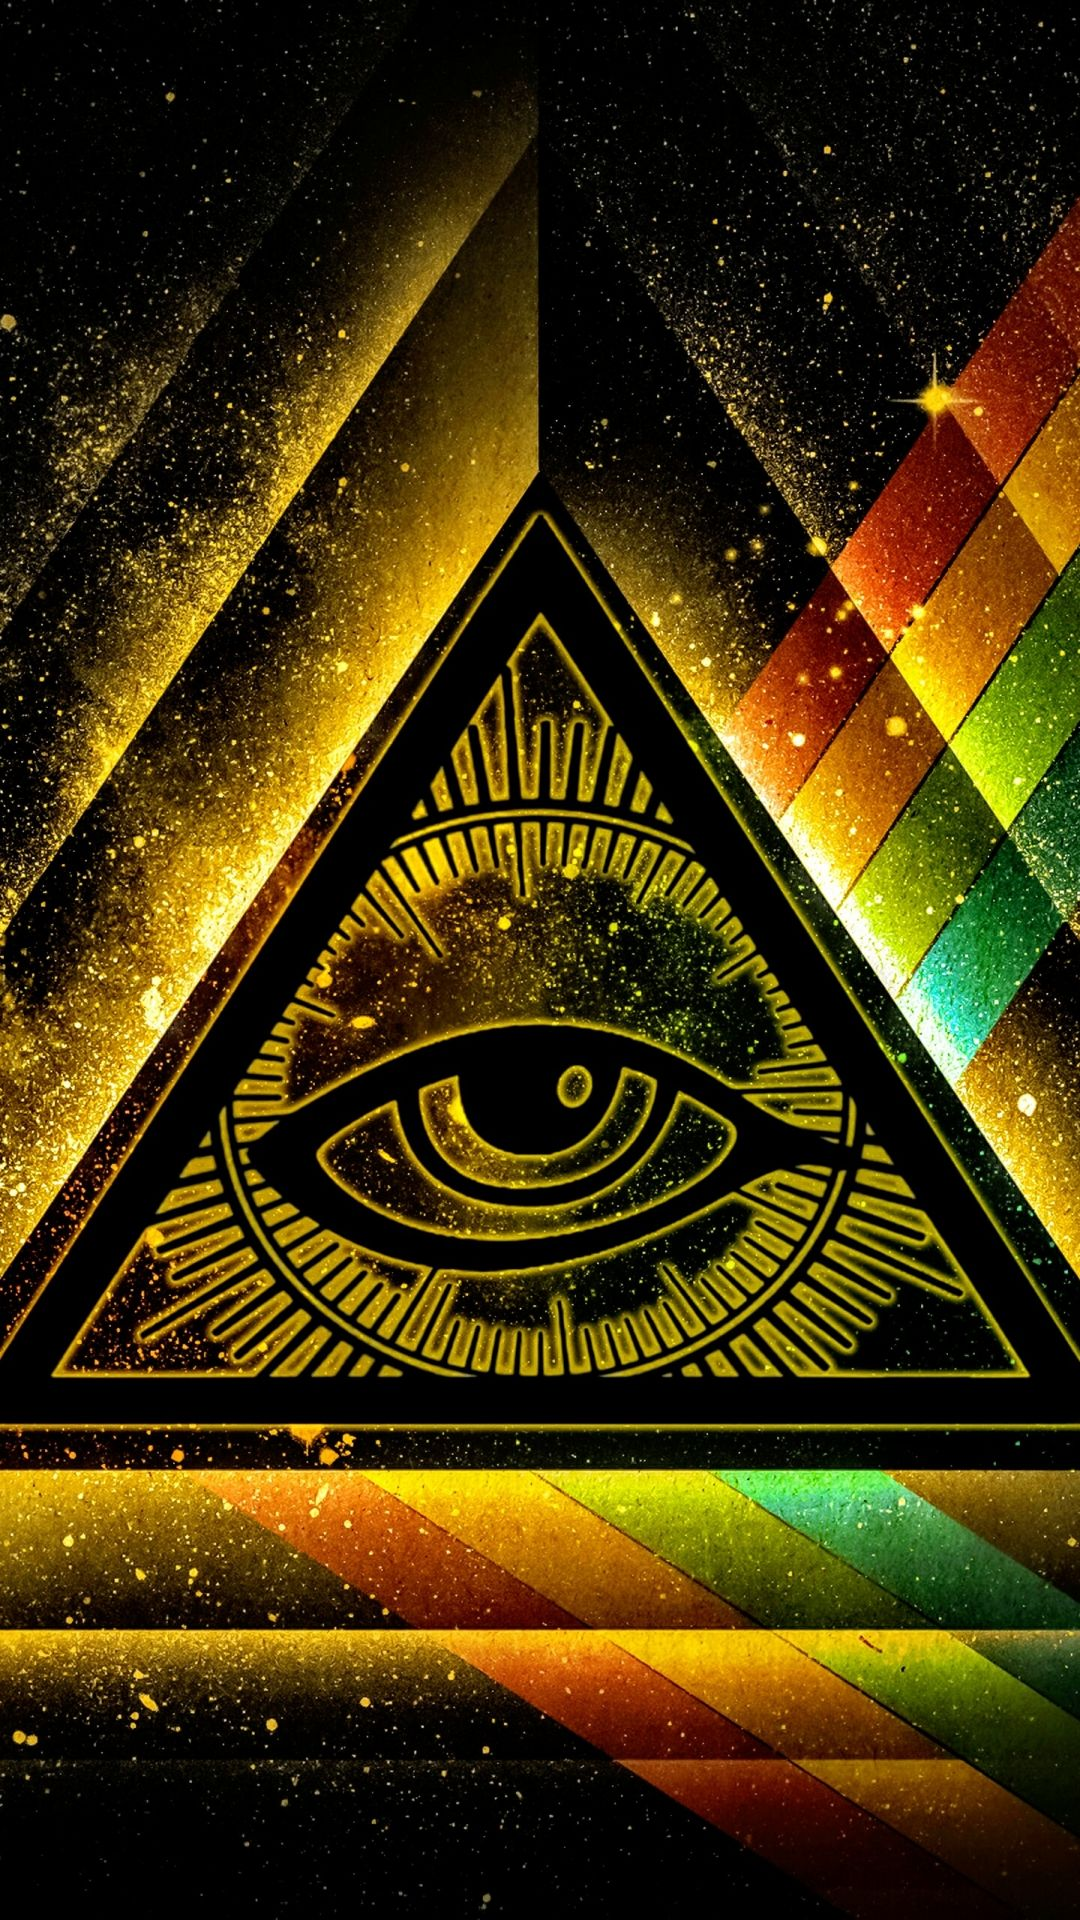 19 All Seeing Eye iPhone Wallpapers - WallpaperBoat